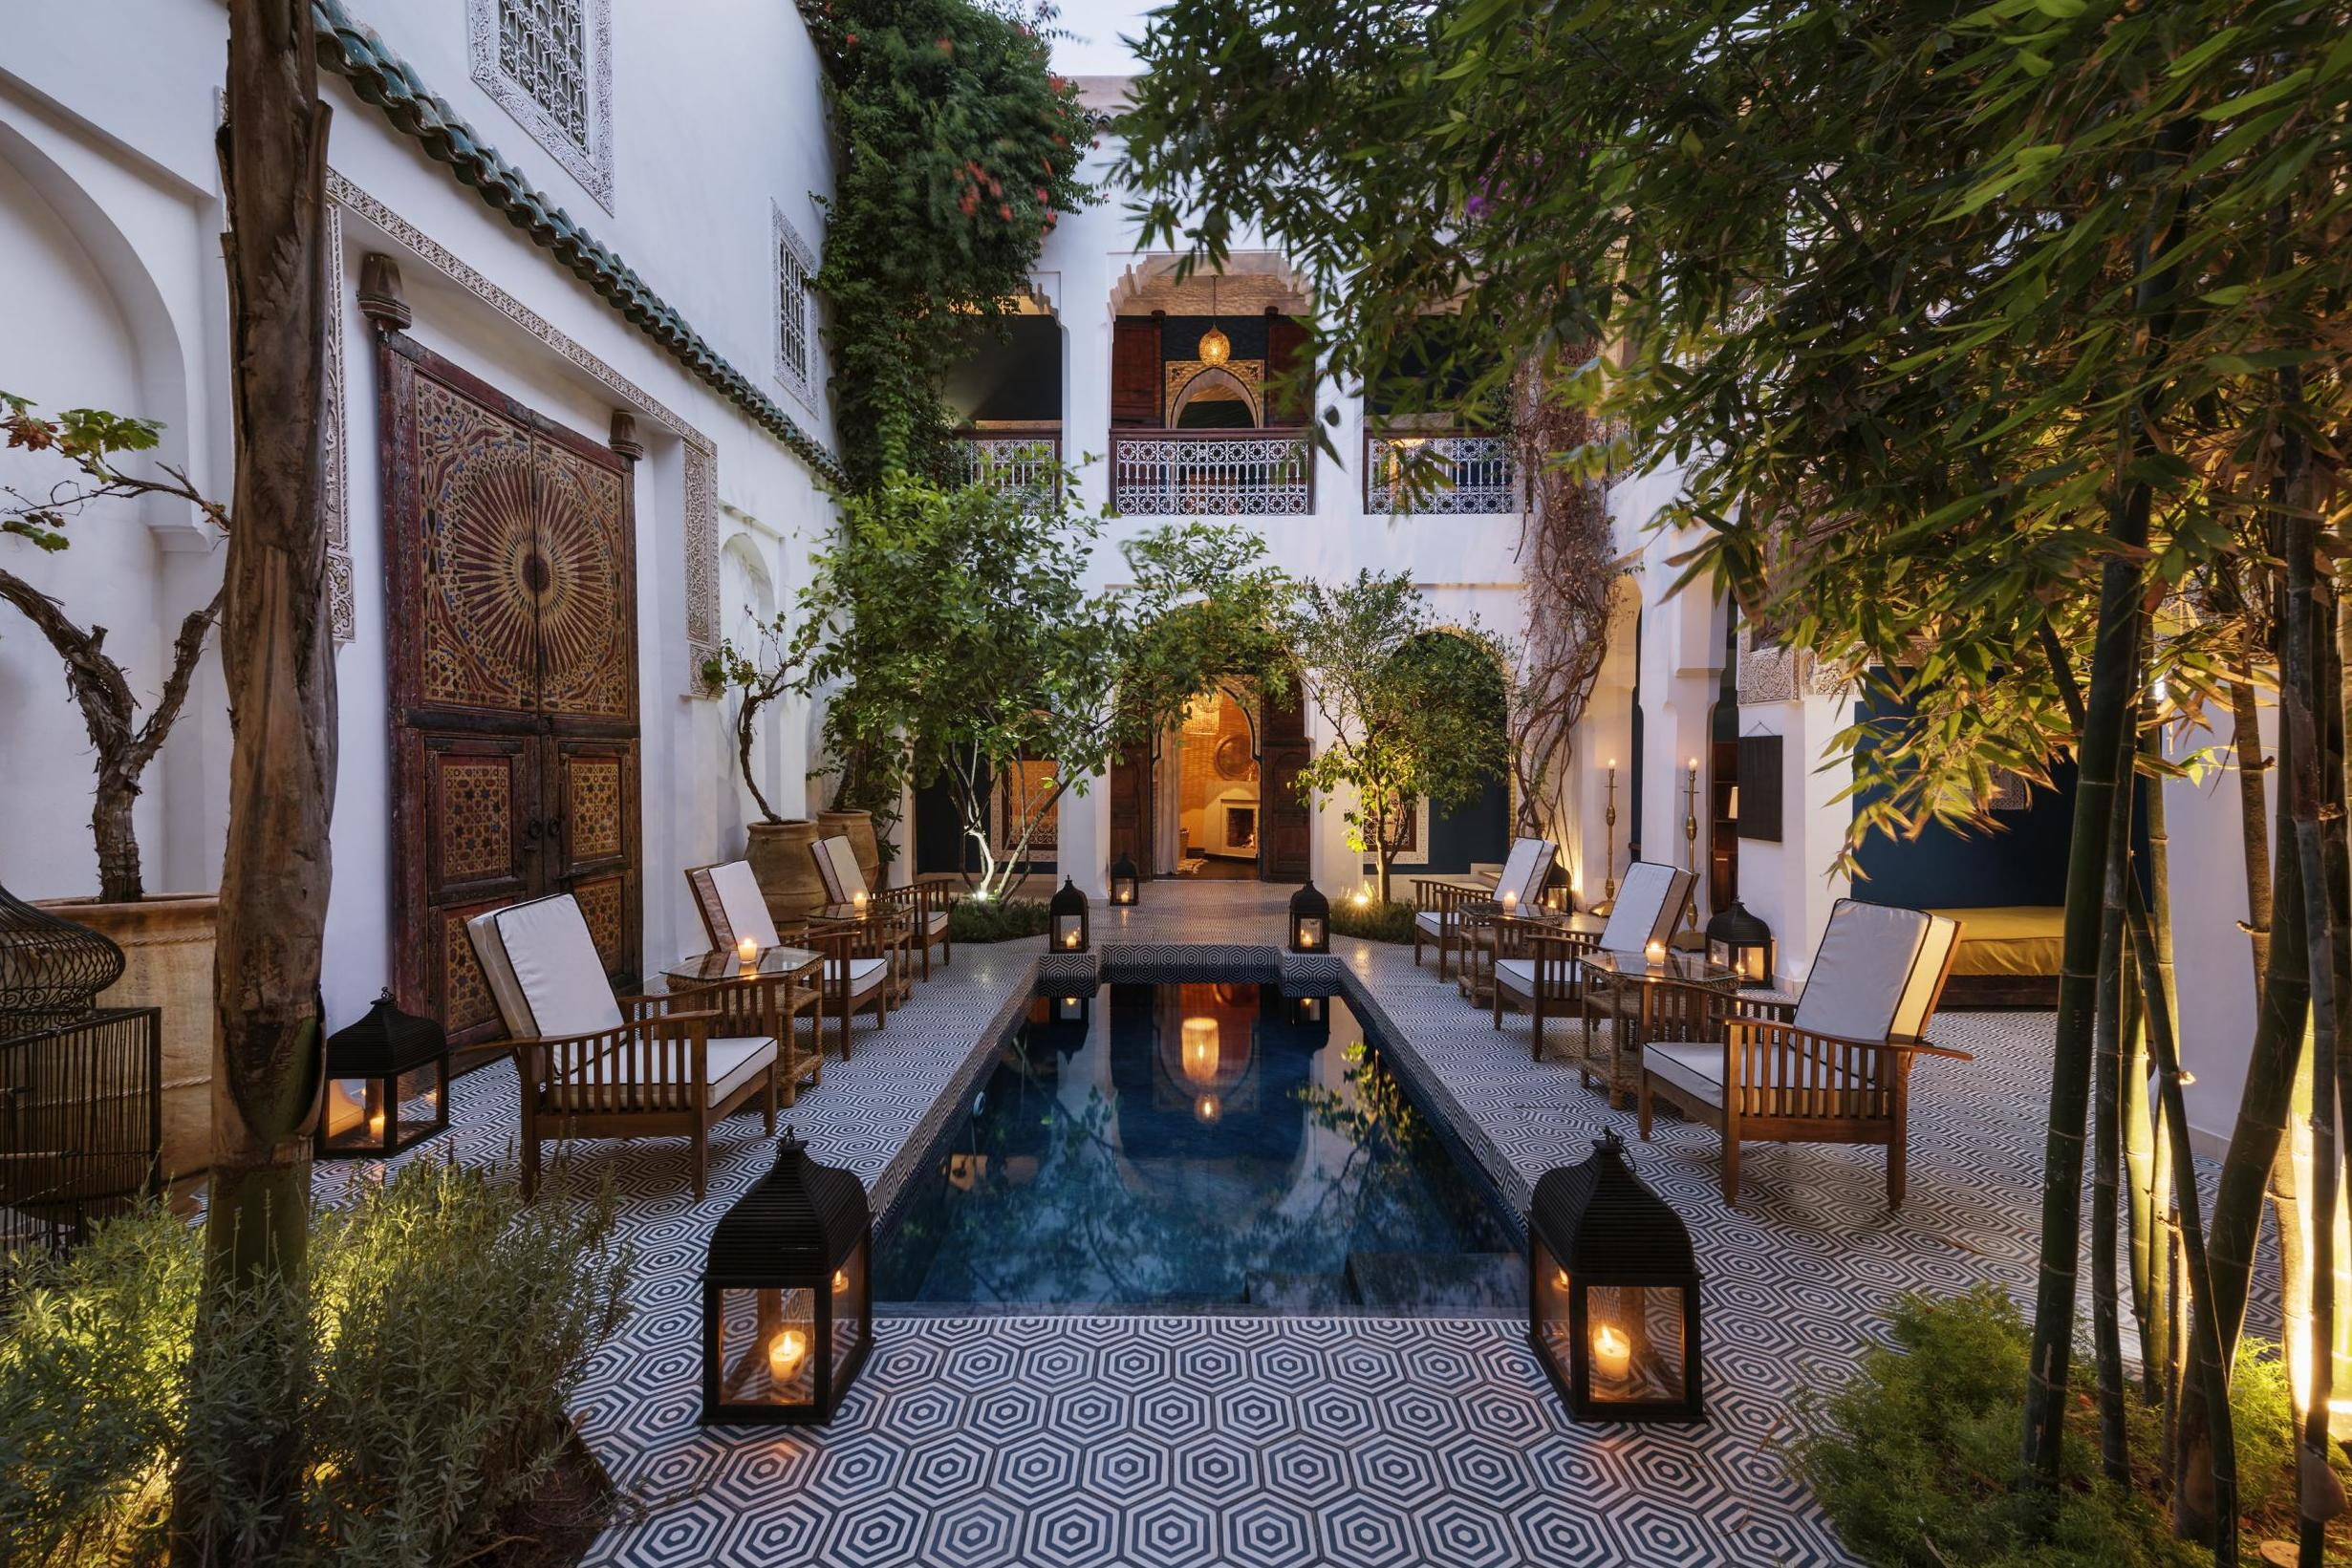 Moroccan courtyard with pool and lanterns